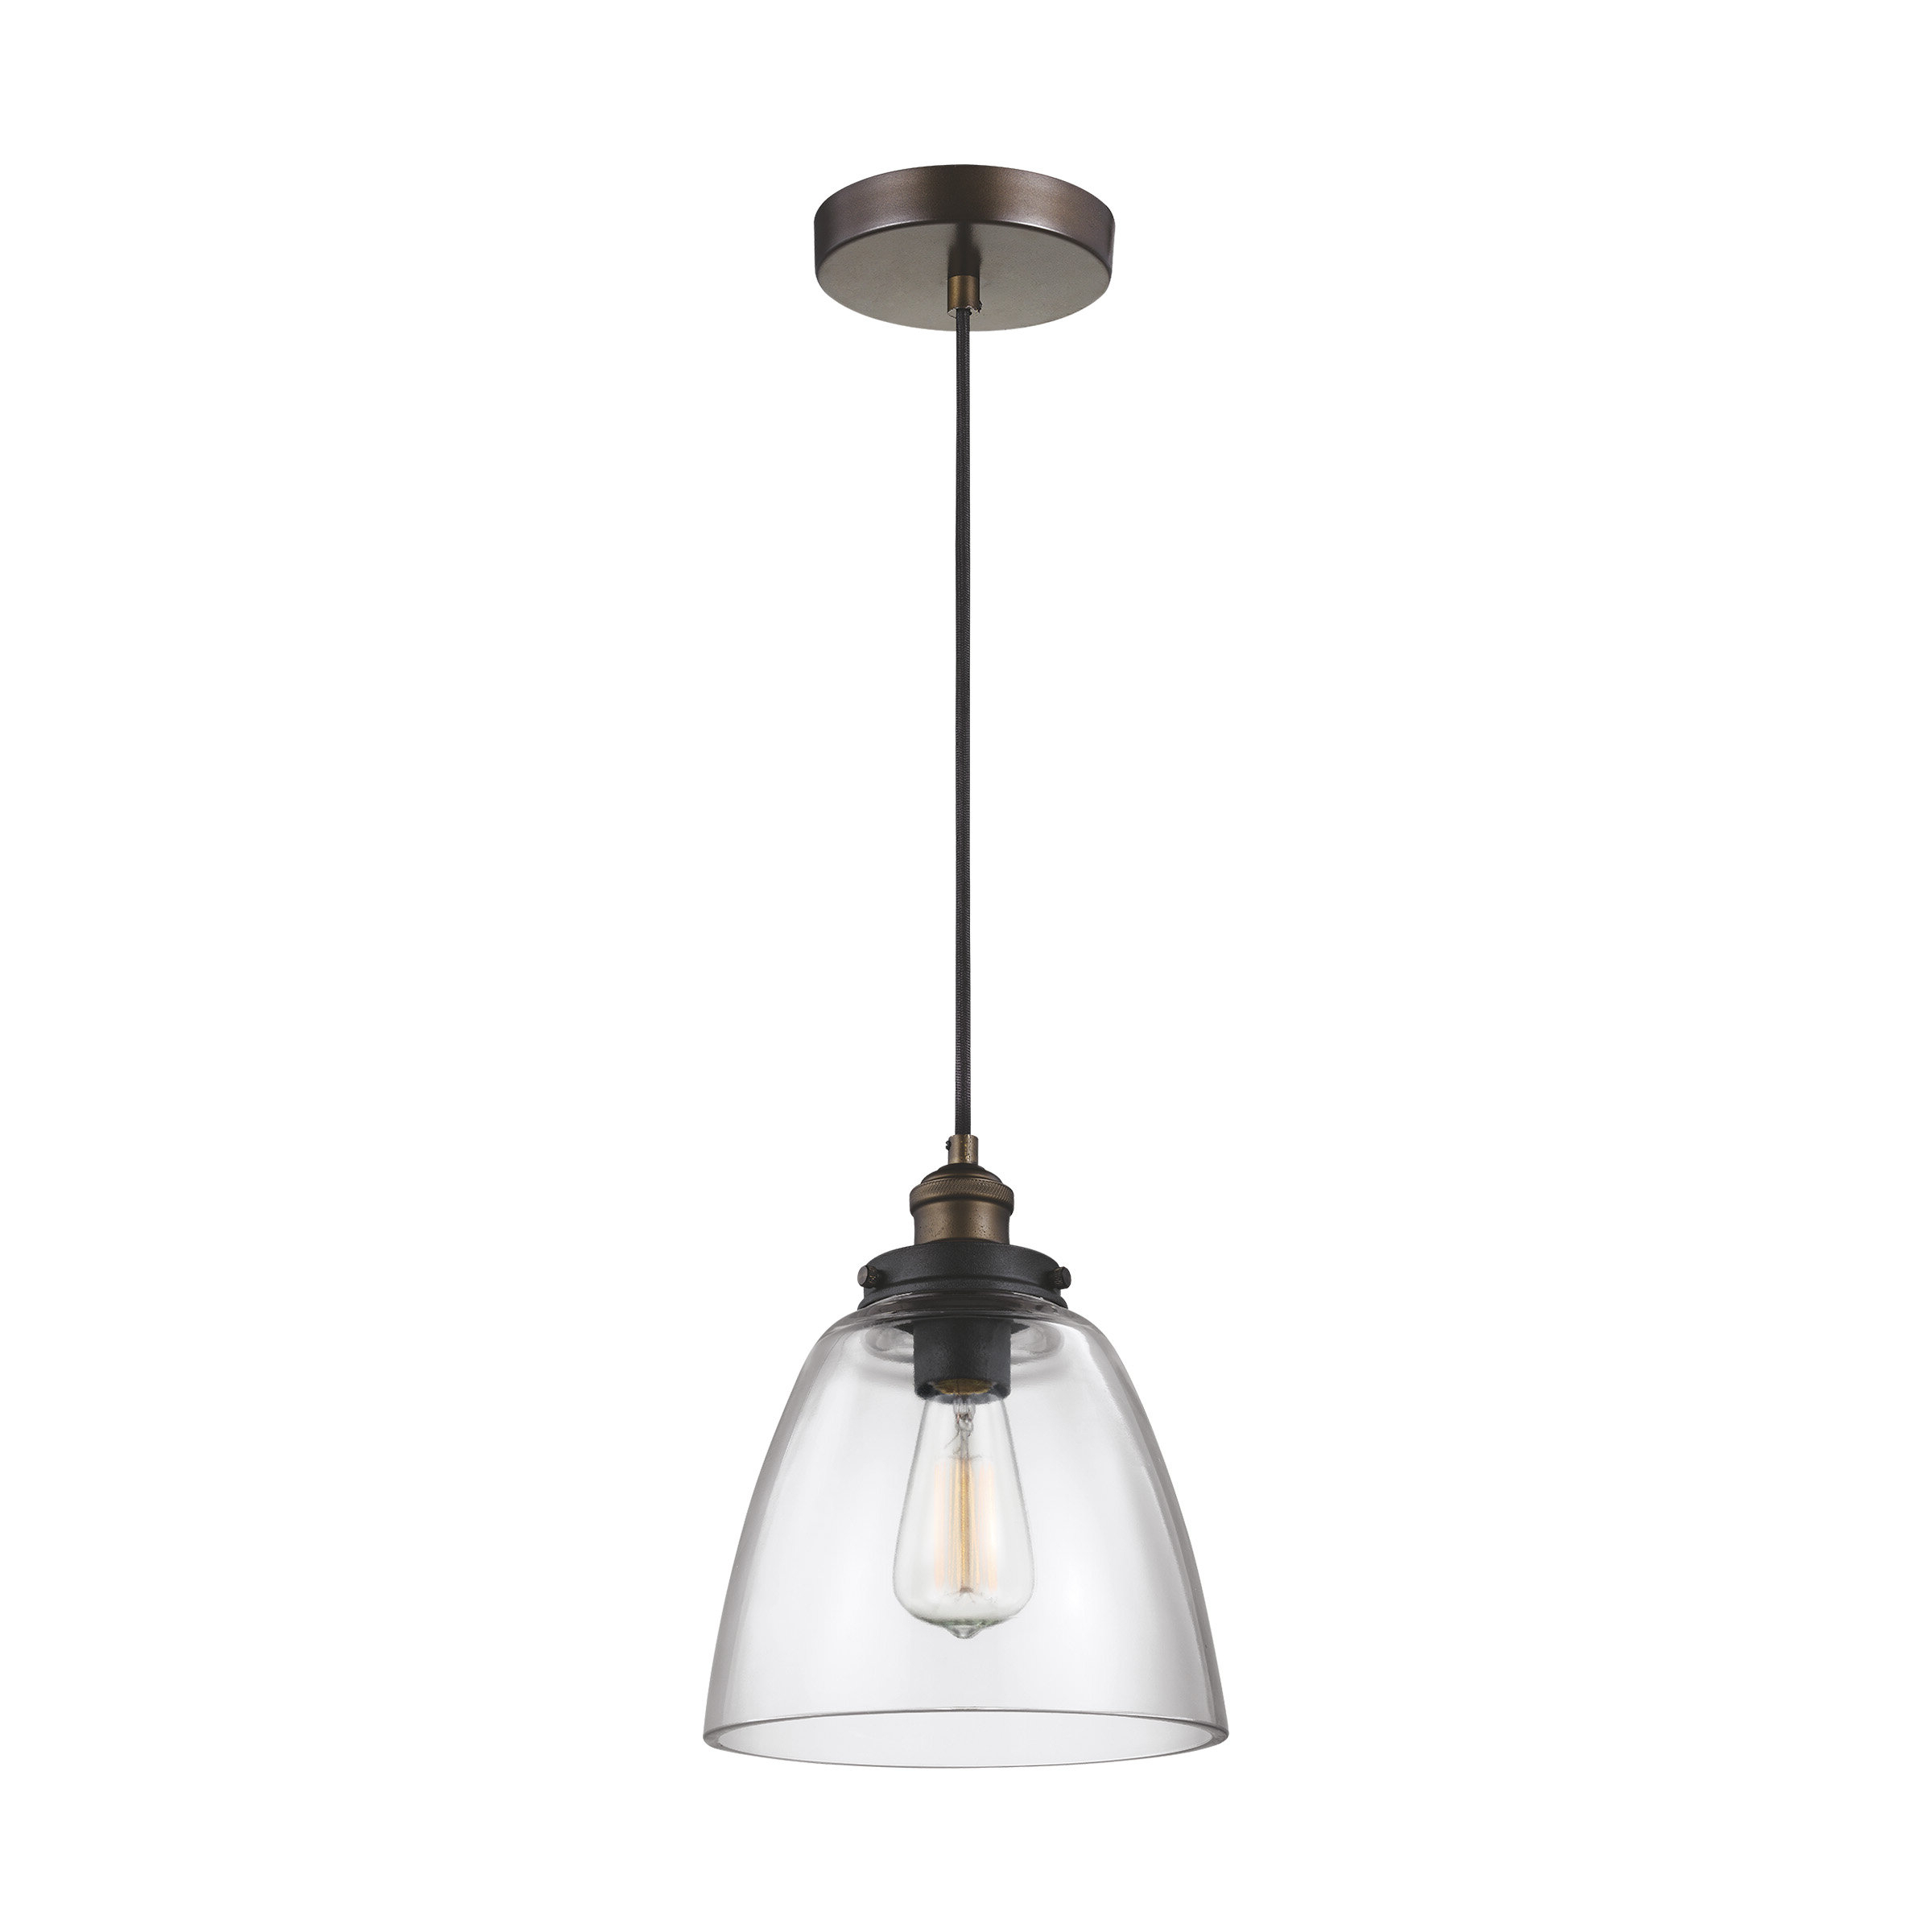 Trent Austin Design Bedford 1 Light Single Cone Pendant For Most Recently Released Goldie 1 Light Single Bell Pendants (View 20 of 20)